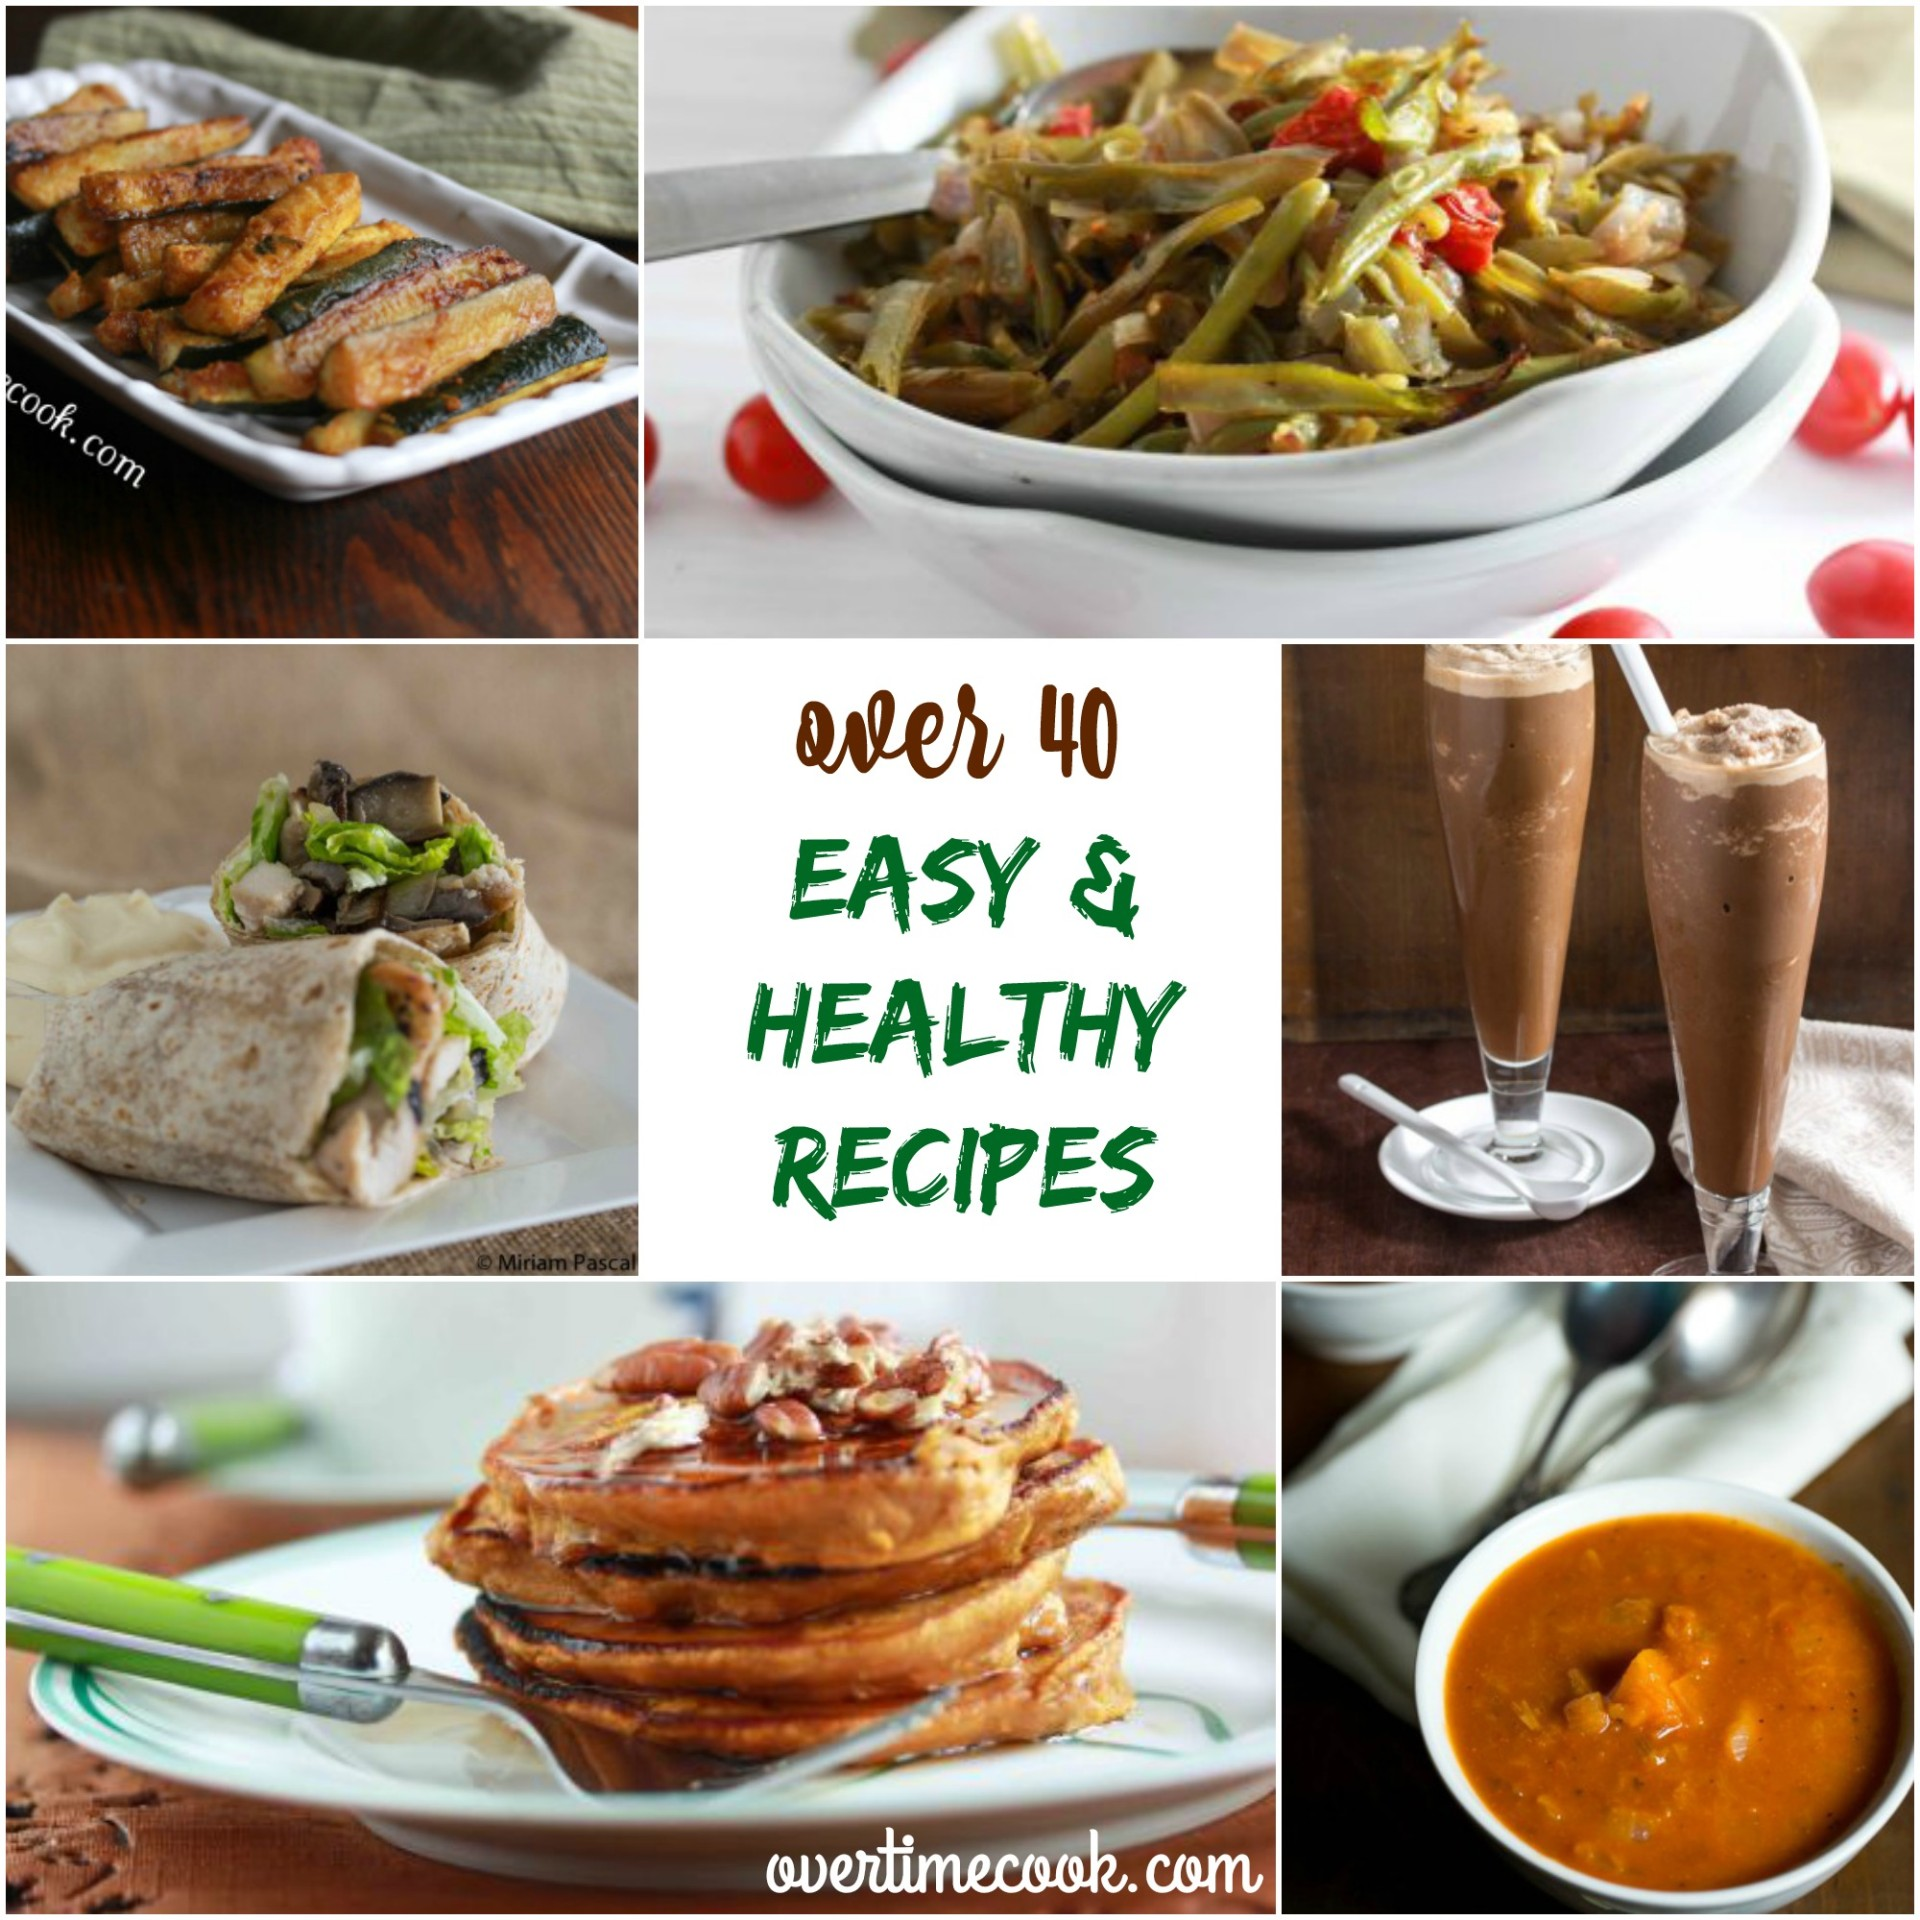 Simple And Nutritious: Over 40 Easy And Healthy Recipes